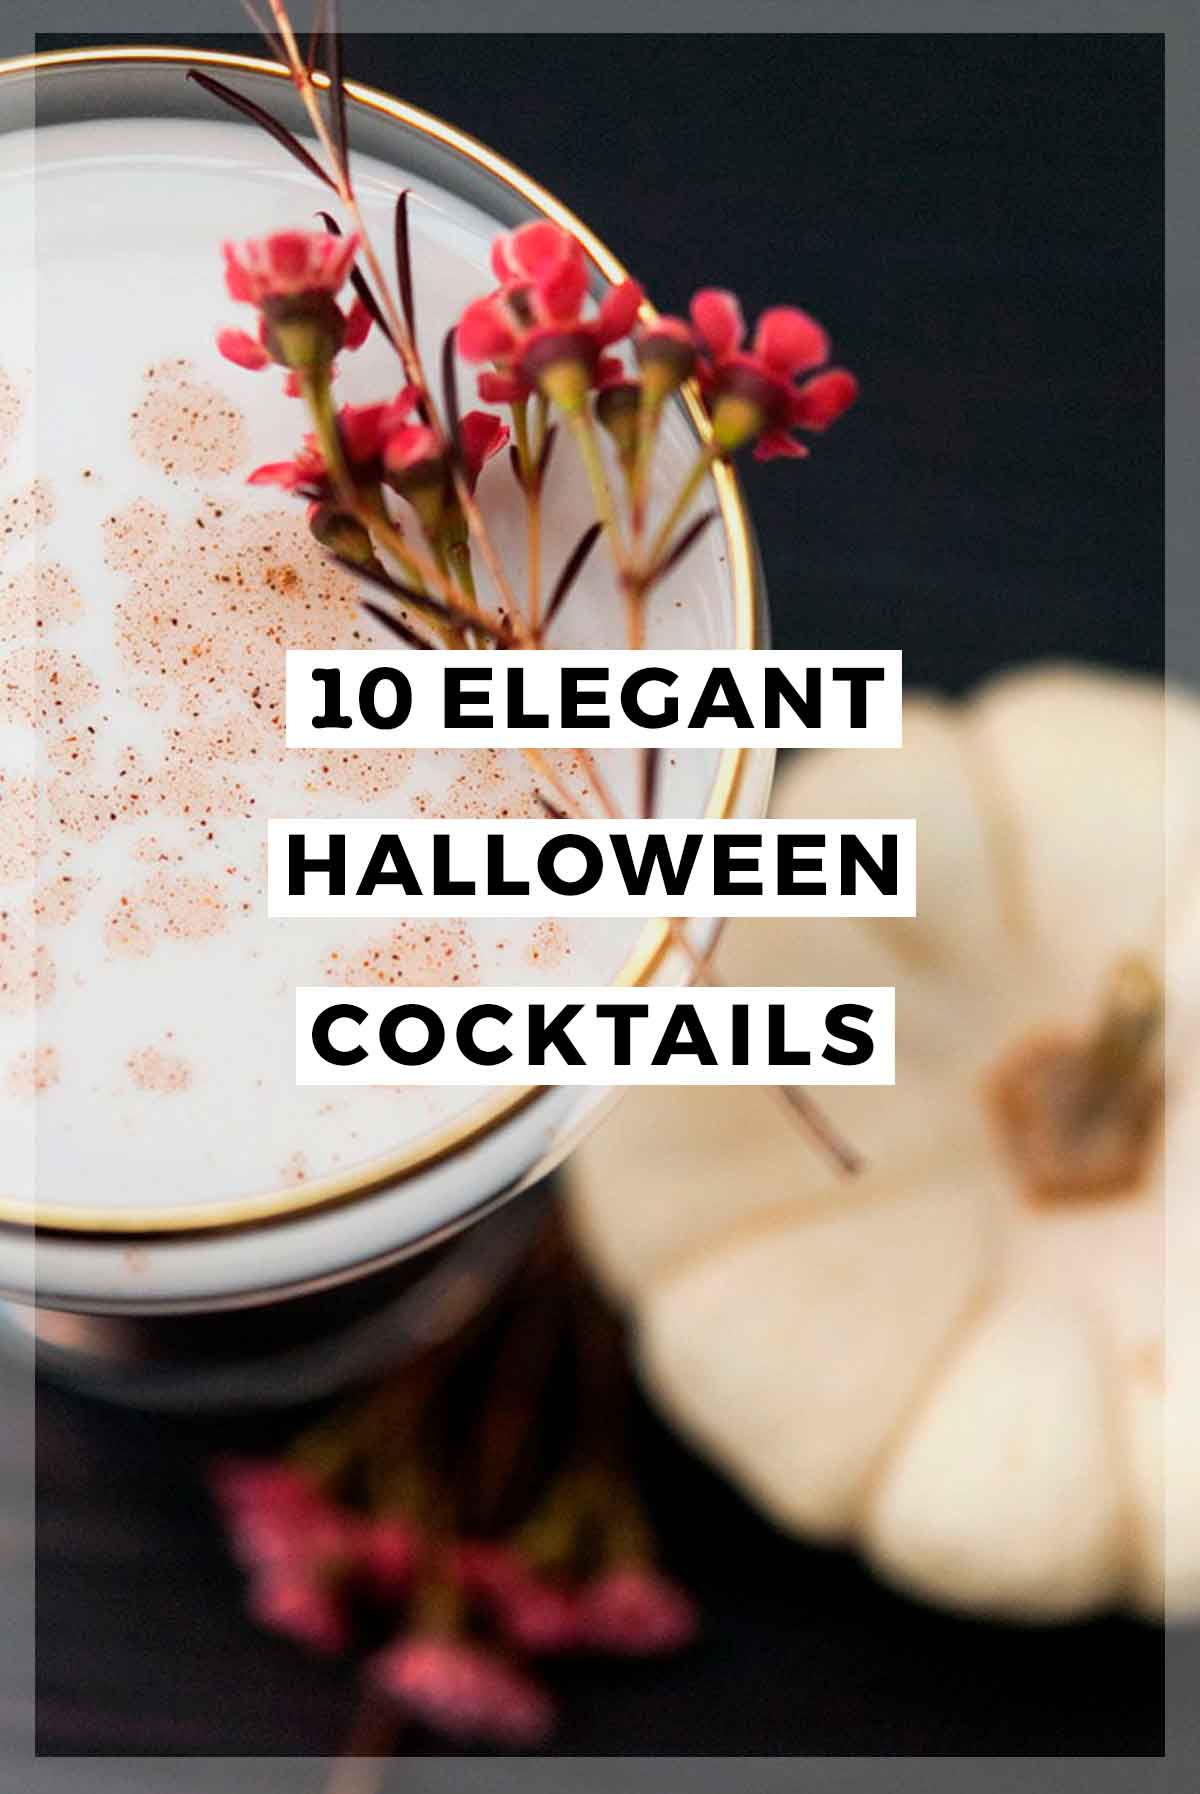 """A garnished cocktail with a title that says """"10 Elegant Halloween Cocktails."""""""